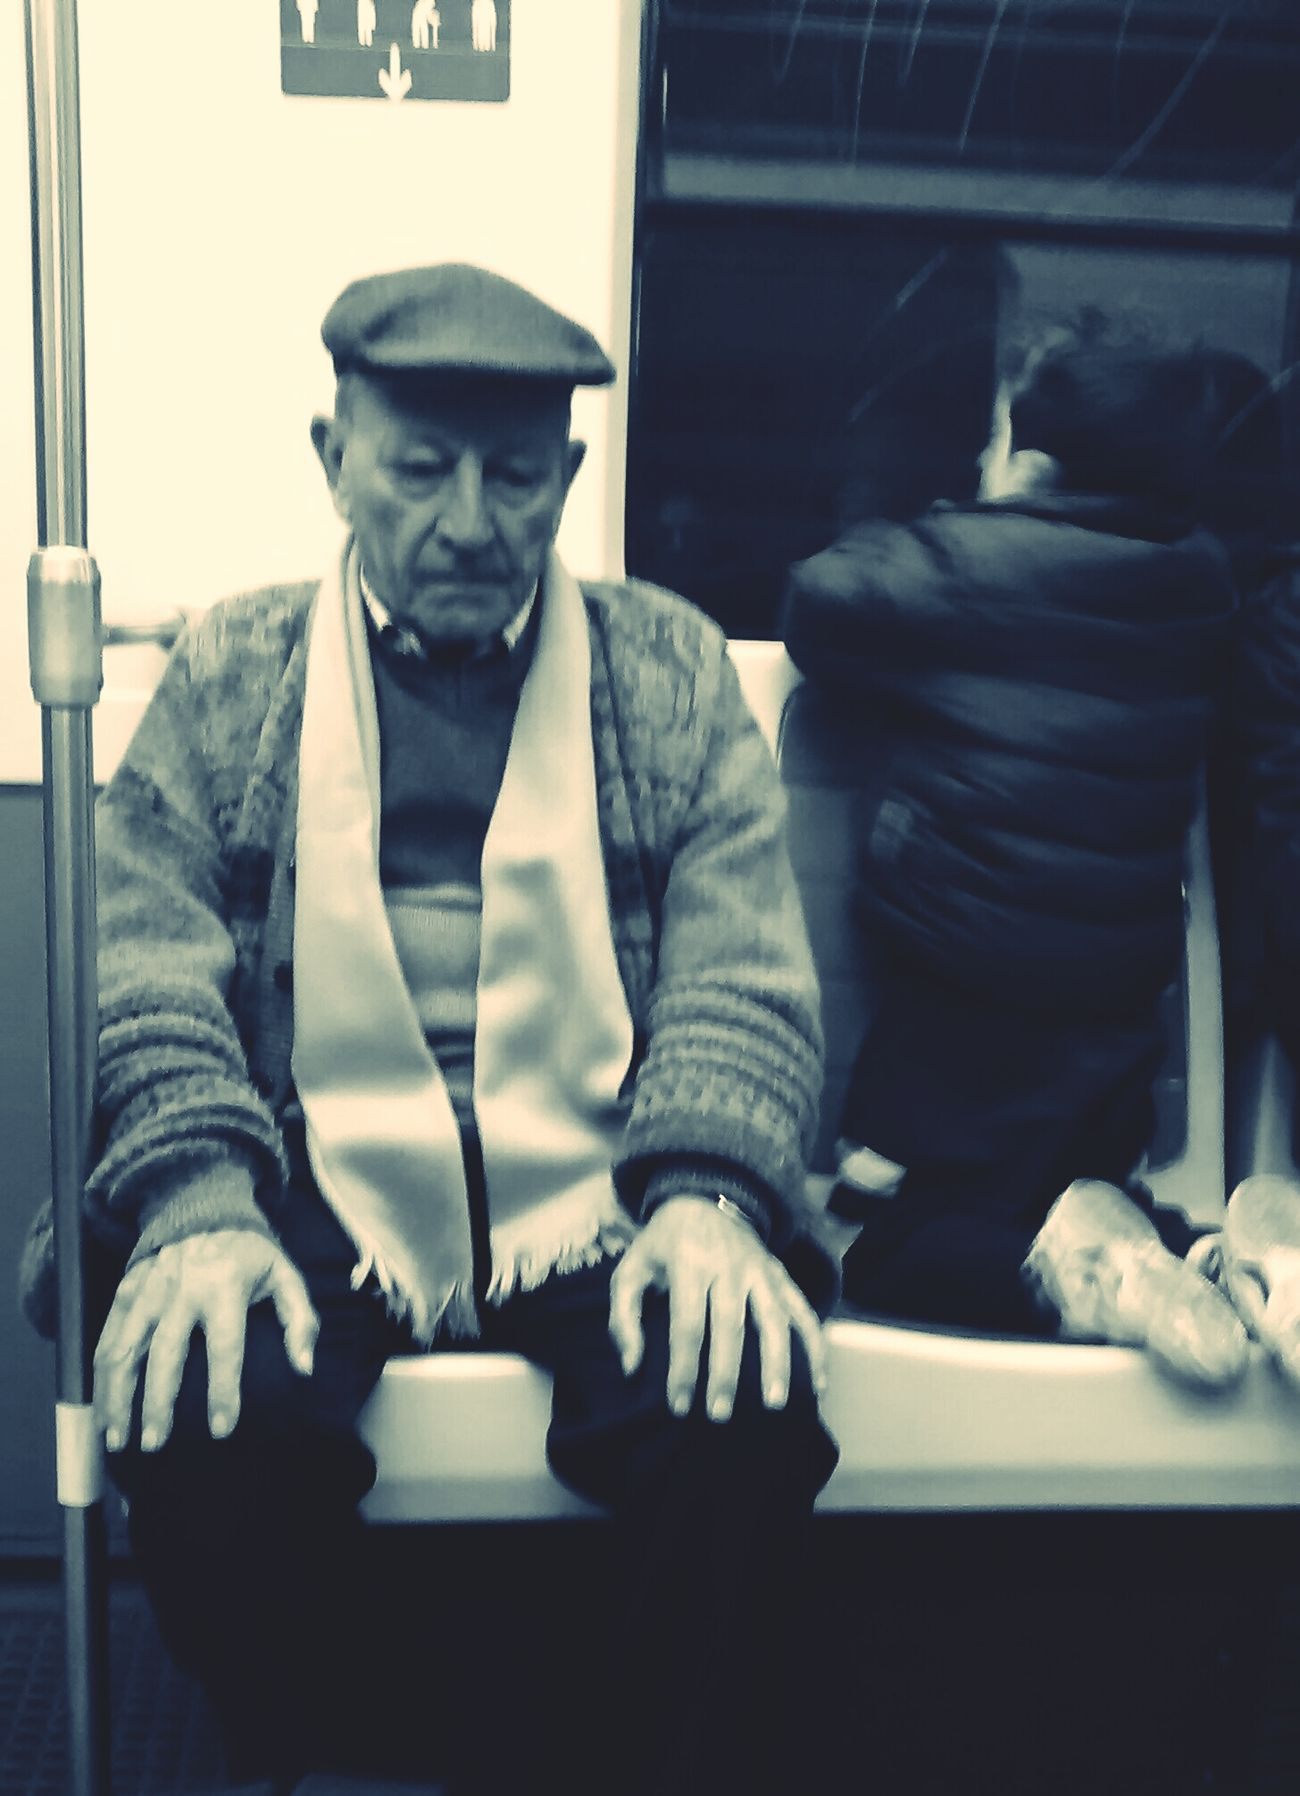 The Old Man and The Grandson Peoplephotography Dem Fontana Metro Madrid Subway Portraits